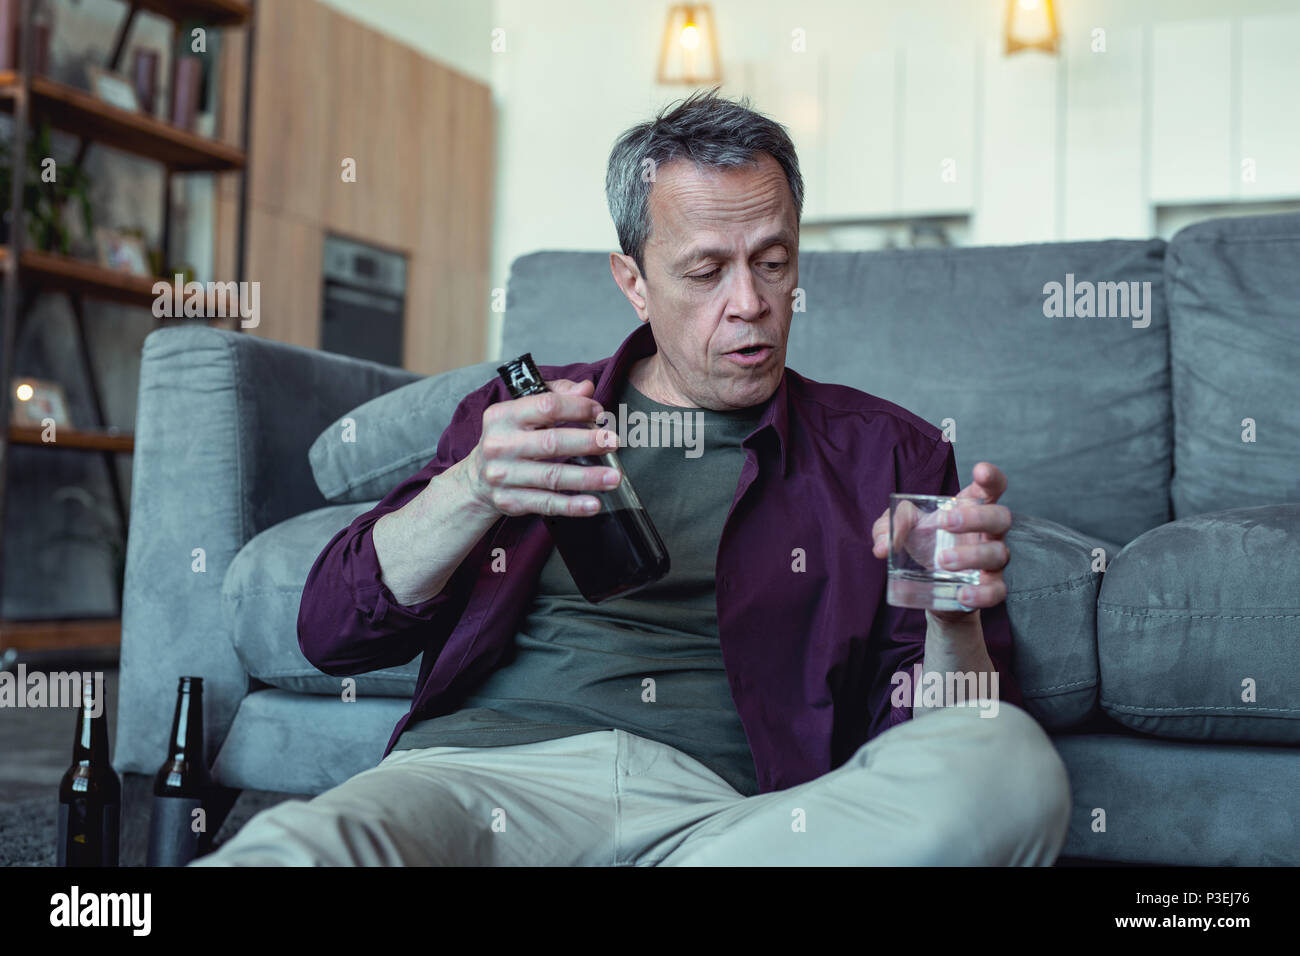 Man with facial wrinkles sitting with glass of vodka - Stock Image